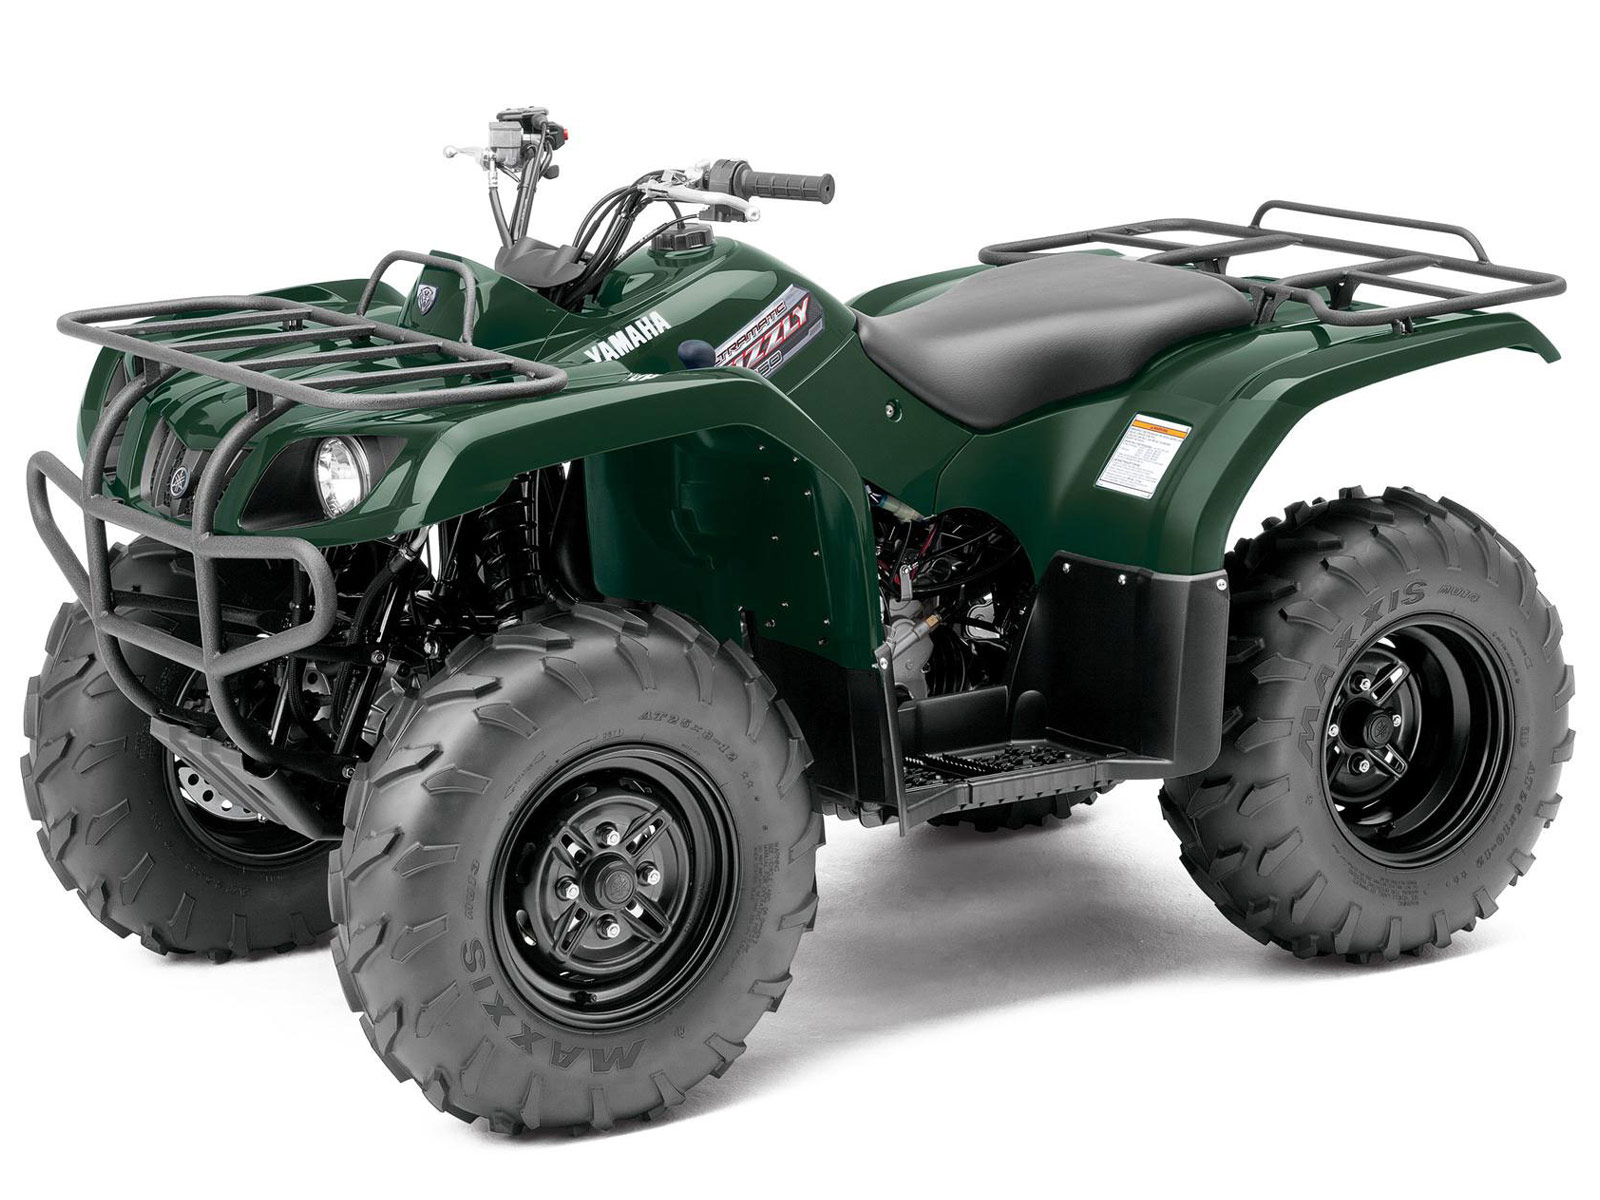 Yamaha insurance information grizzly 350 auto 4x4 2013 for Yamaha grizzly atv